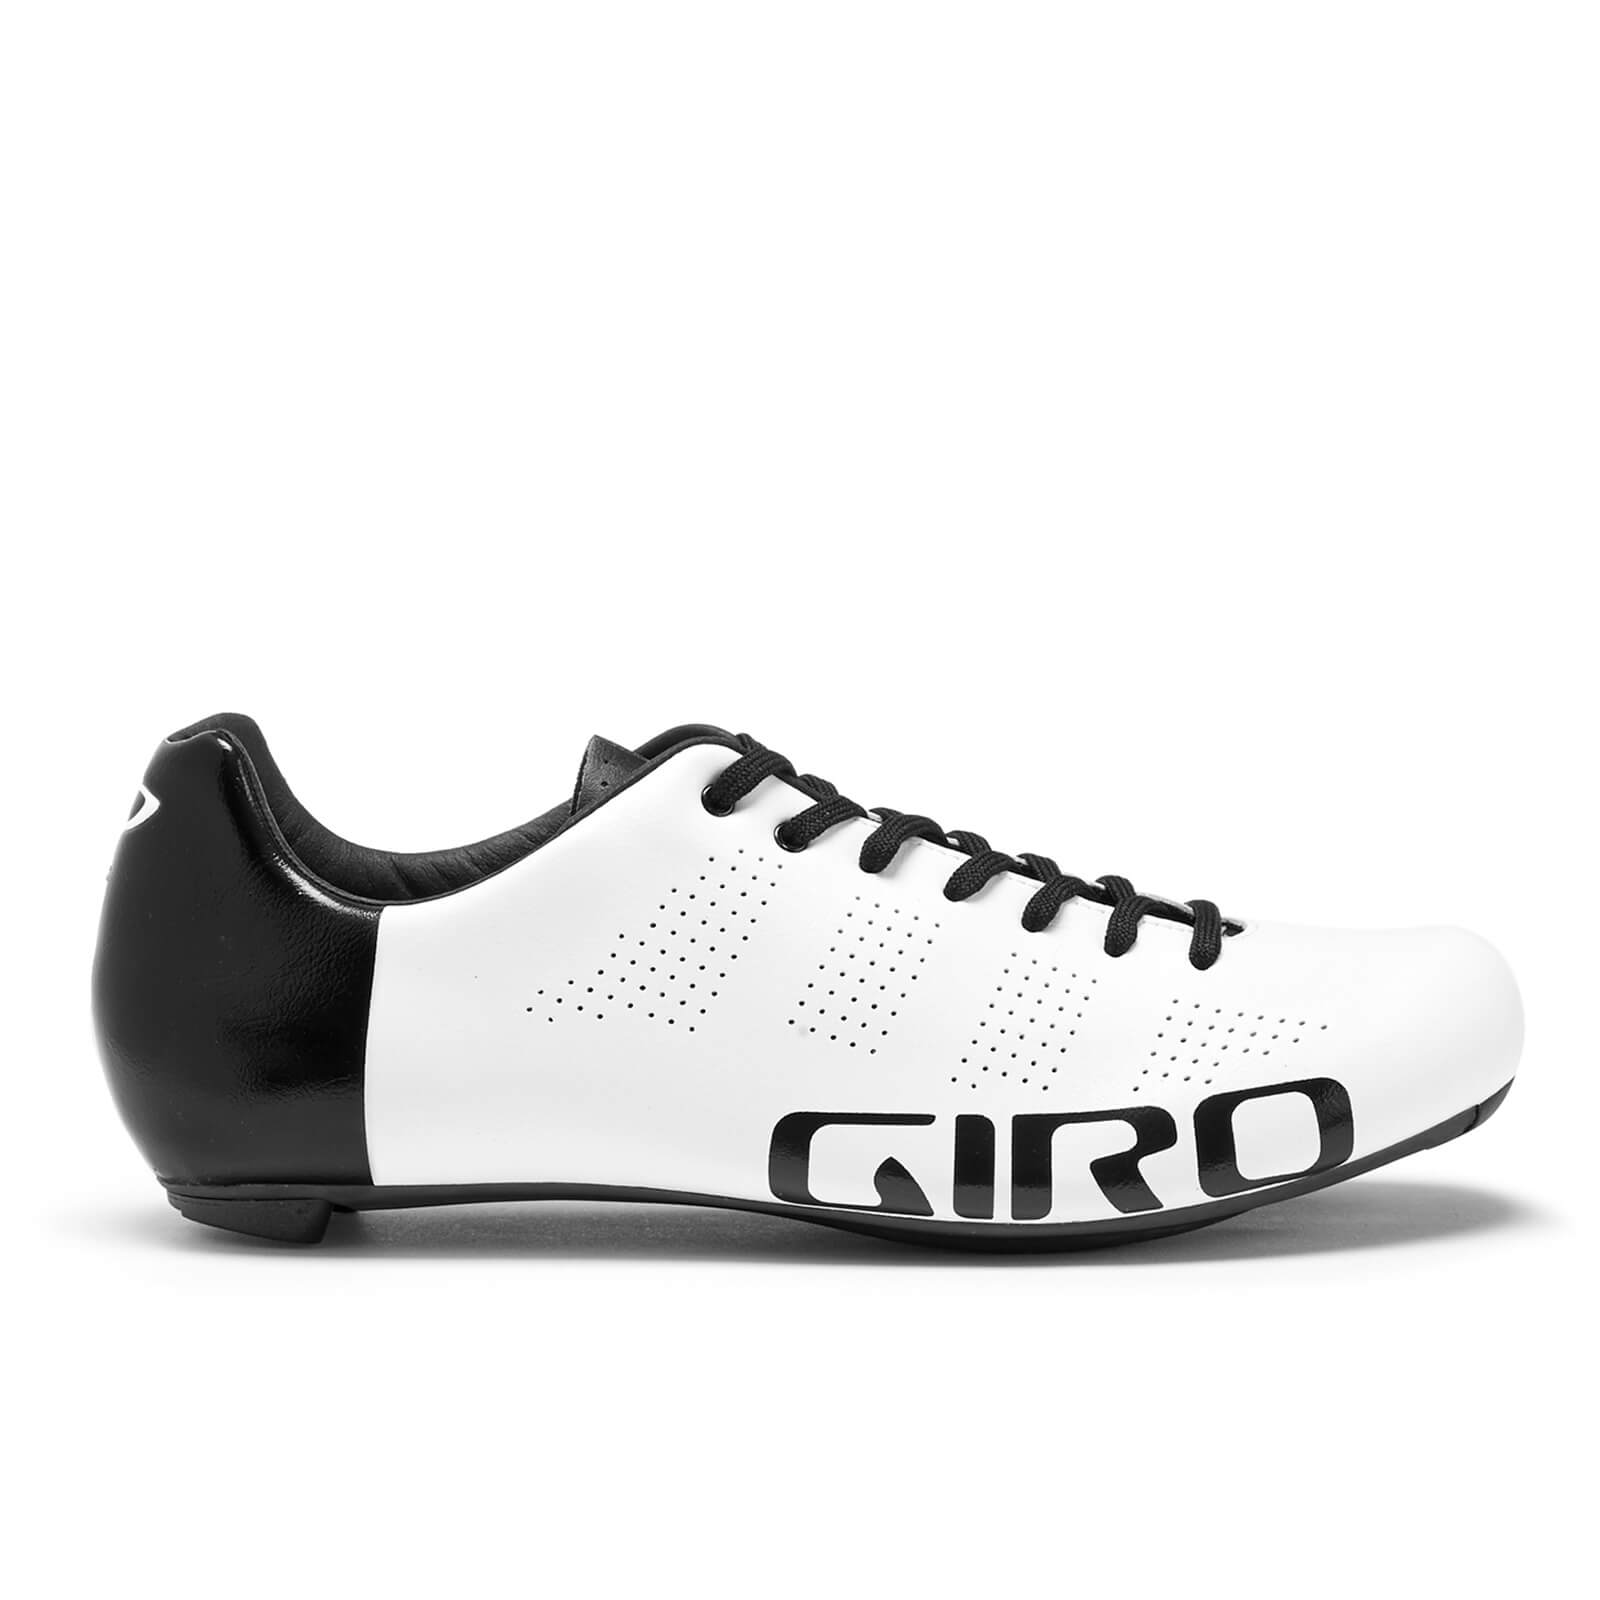 Giro Empire ACC Road Cycling Shoes - White/Black